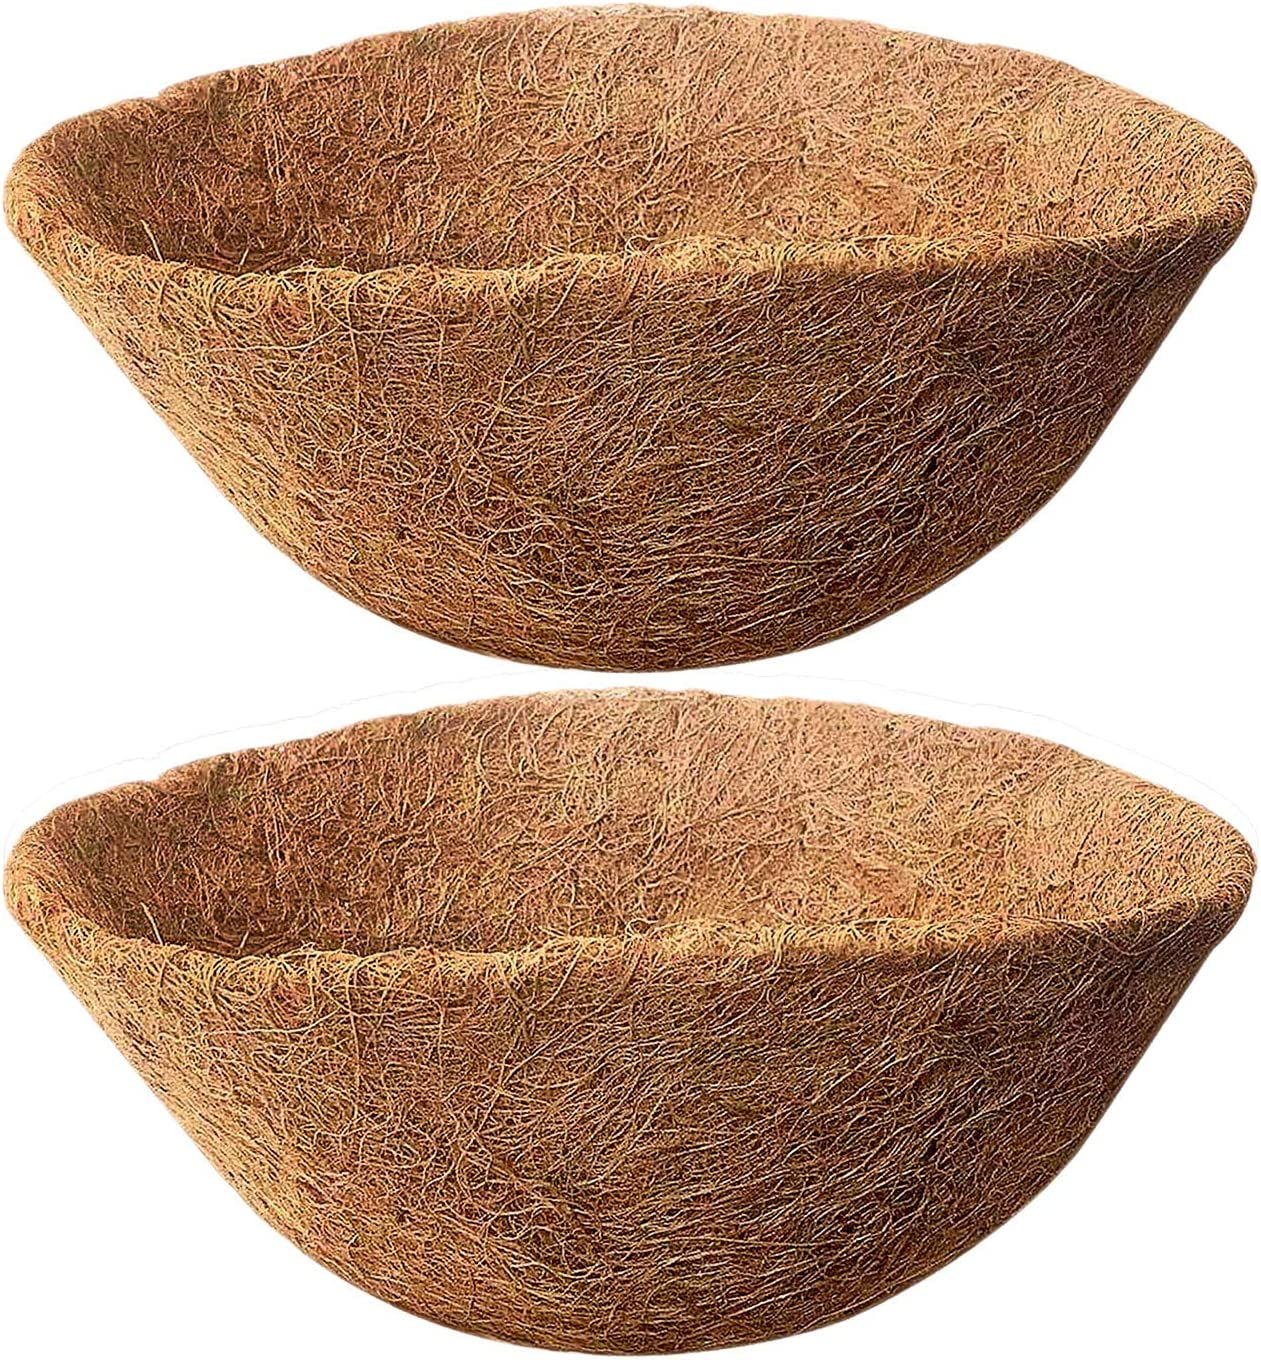 HIMETSUYA 2PCS Round Coco Liners for Hanging Basket, 12 inch Coconut Fiber Planter Liners Coconut Fiber Liners for Wall Hanging Baskets, Garden Planter Flower Pot (12 in)